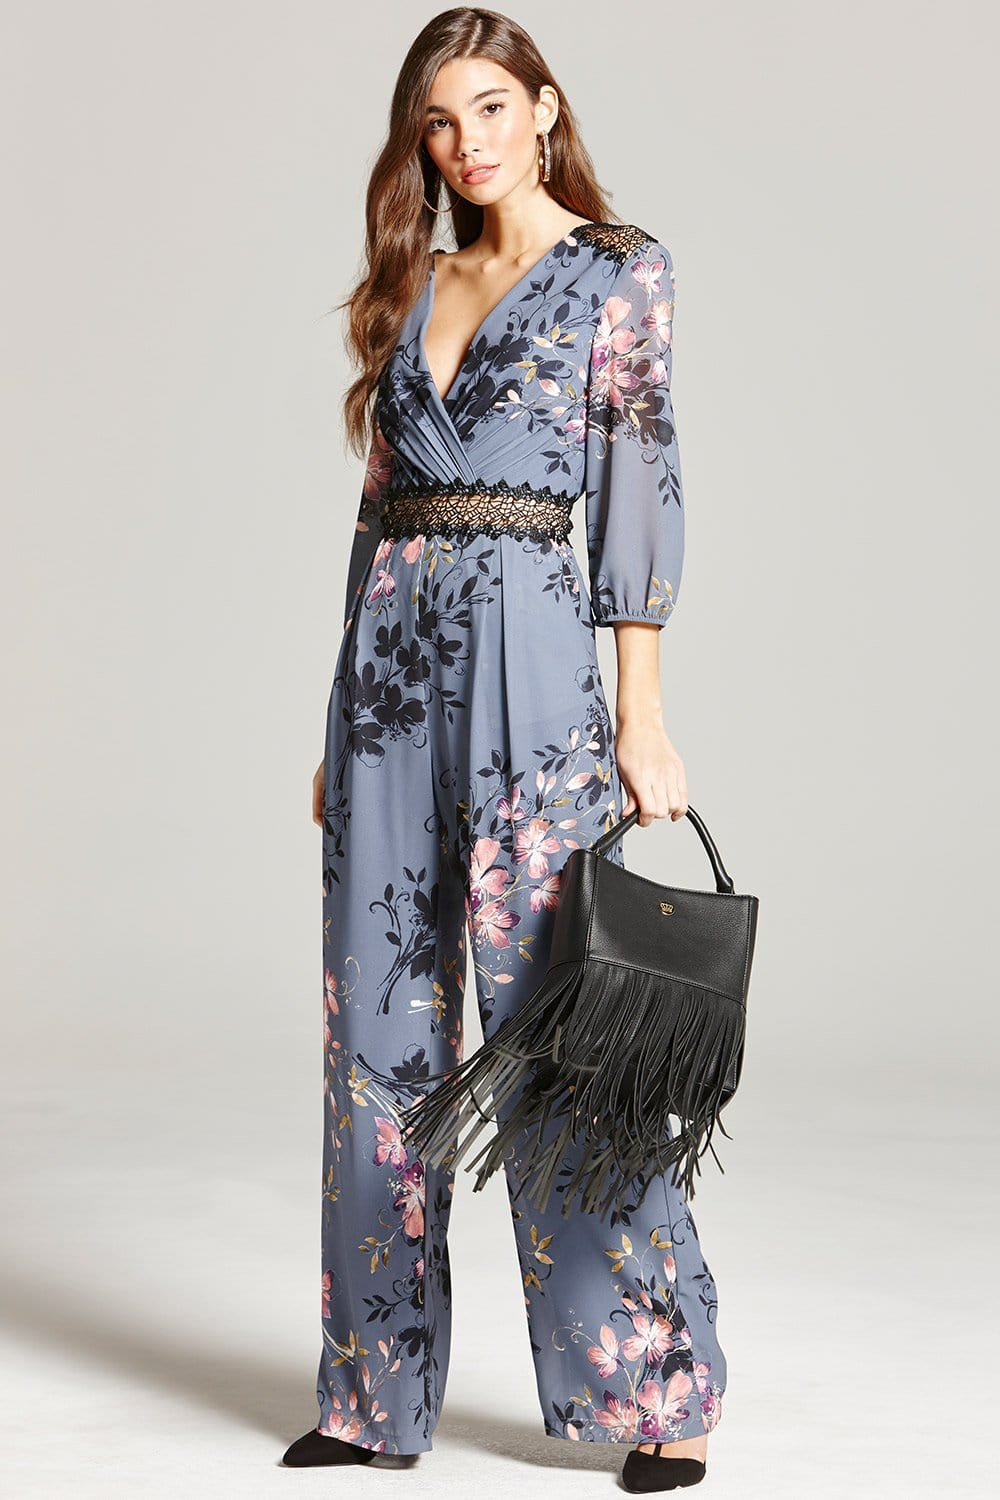 Floral Print And Lace Jumpsuit From Little Mistress Uk